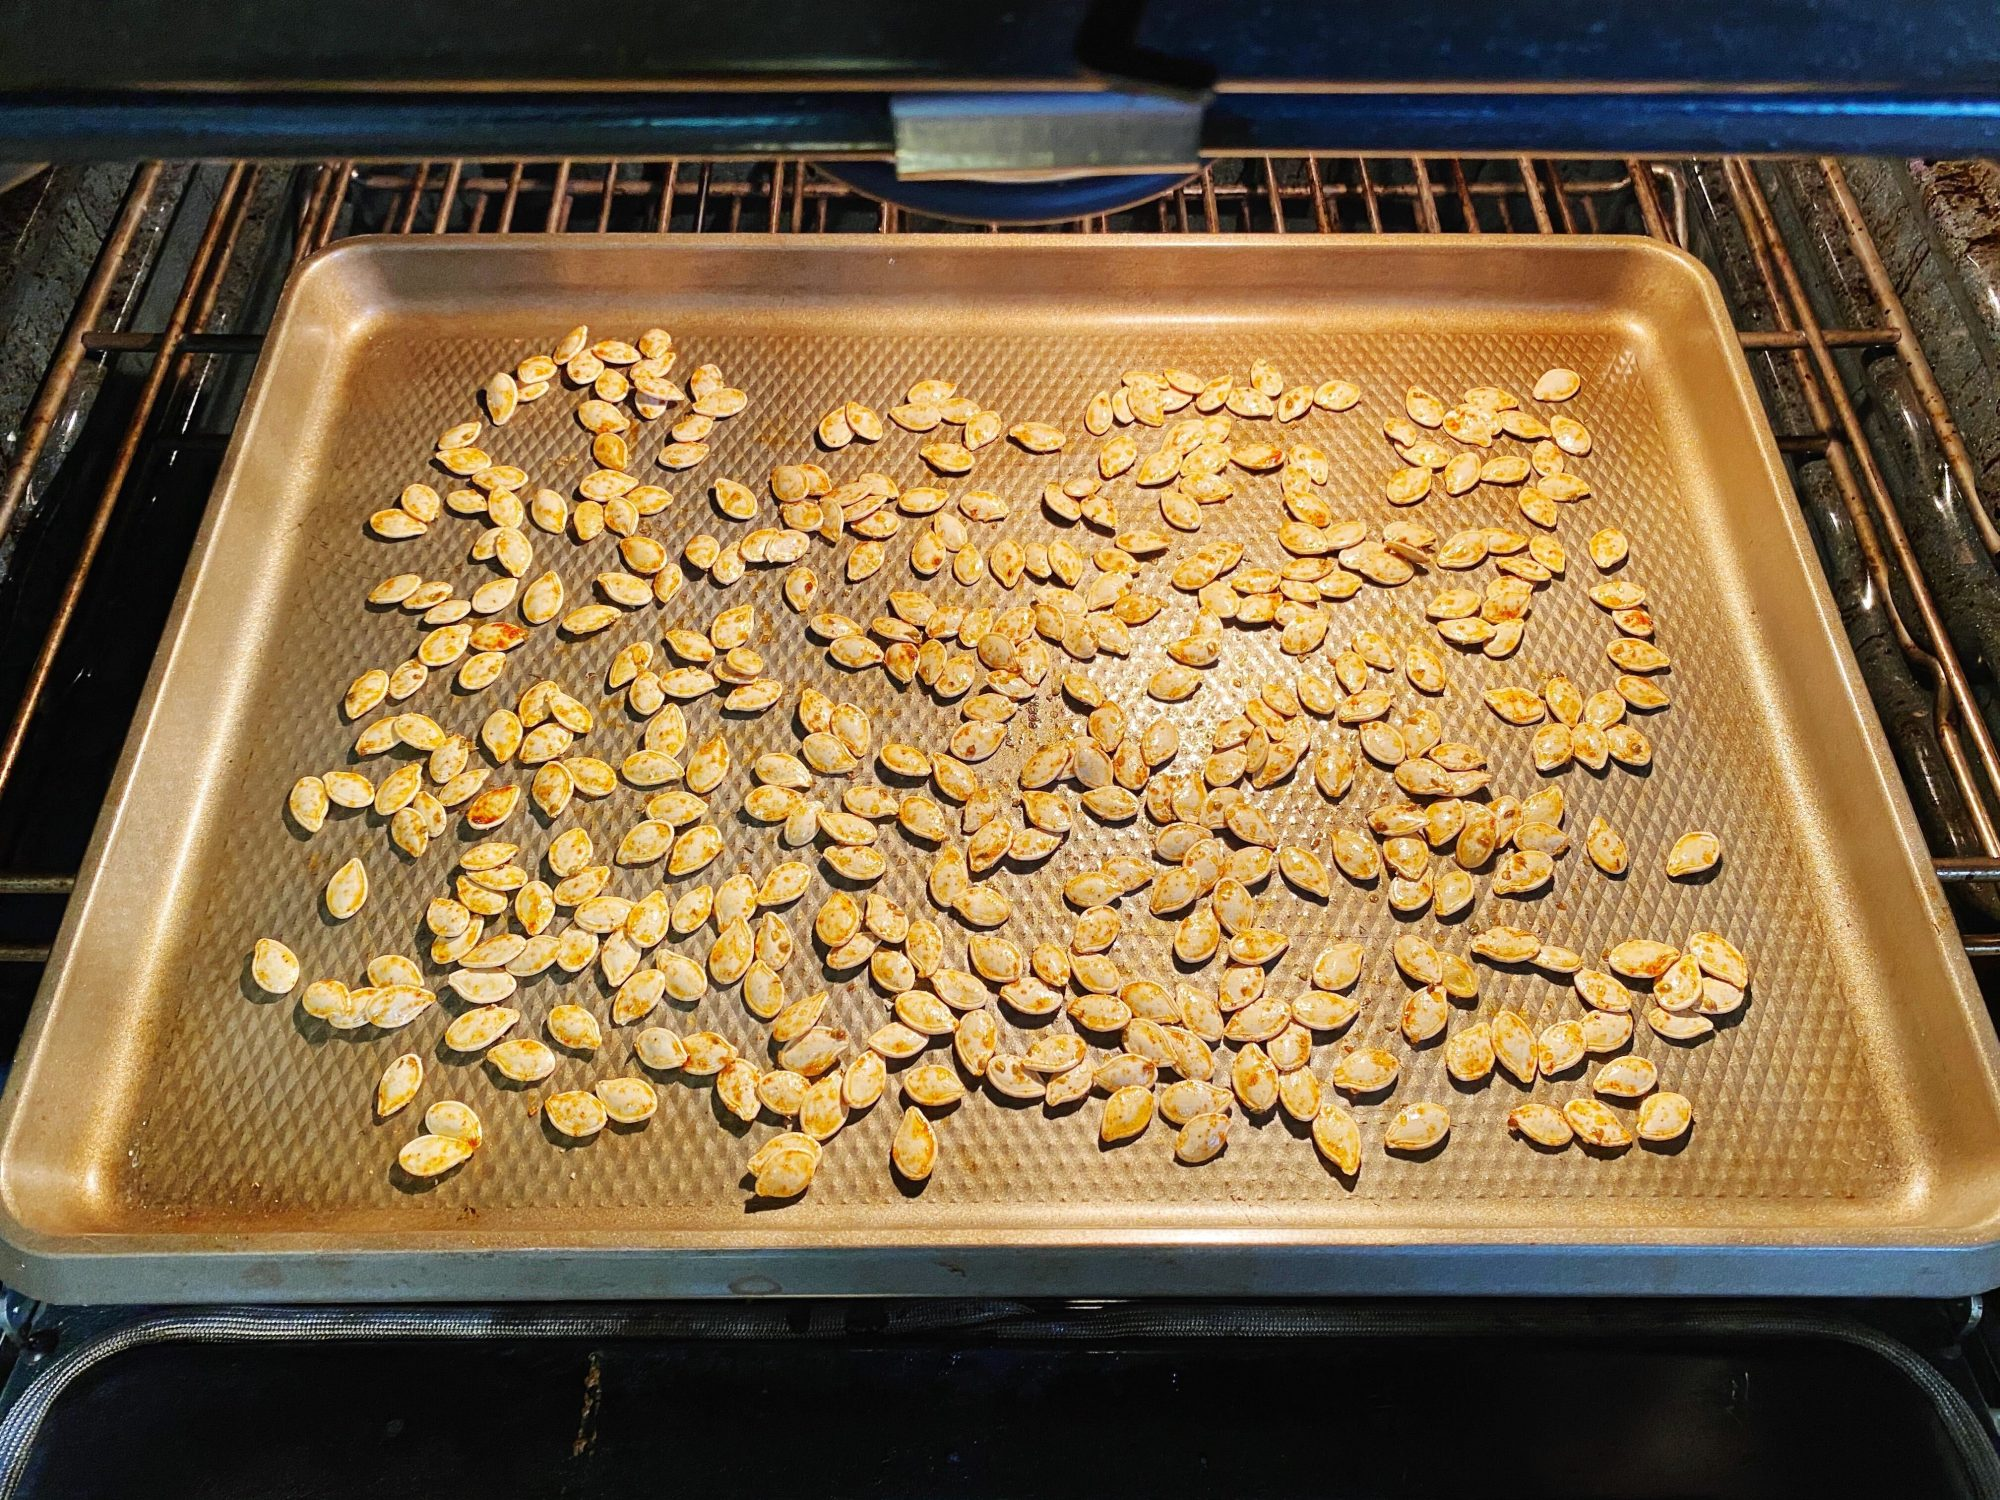 Pumpkin seeds in oven